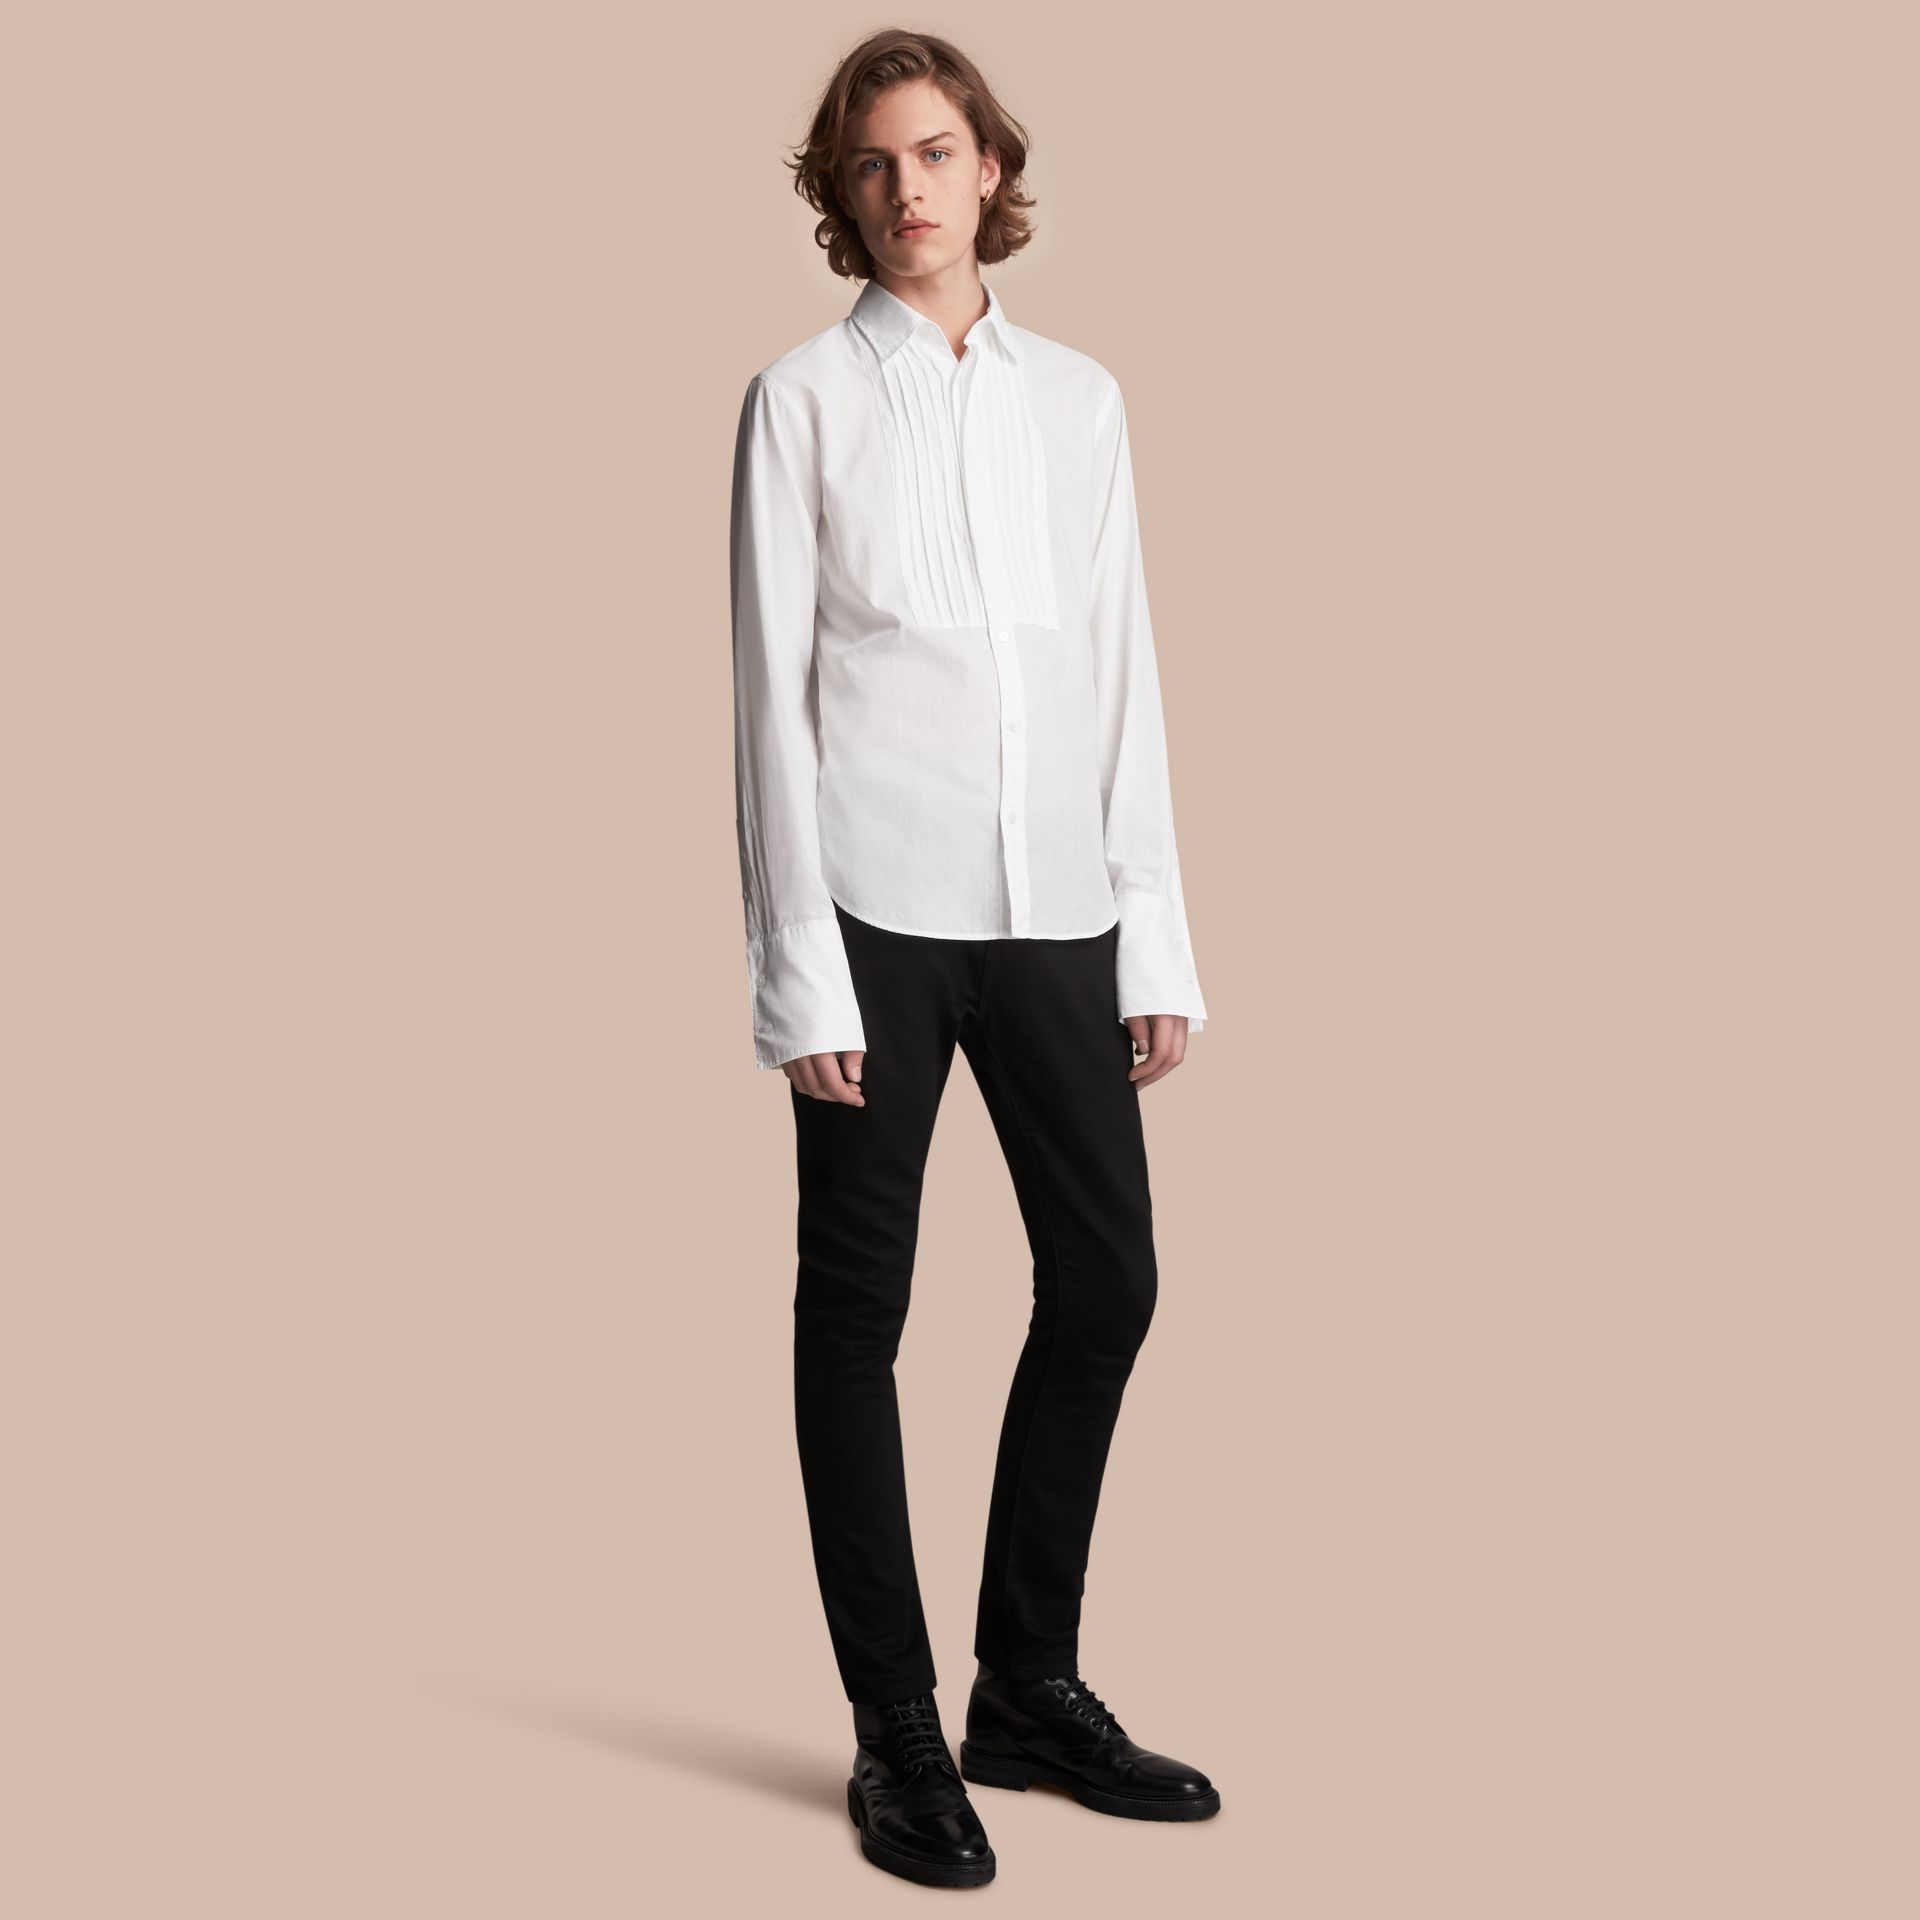 Unisex Double-cuff Pintuck Bib Cotton Shirt in White - Women | Burberry - gallery image 3